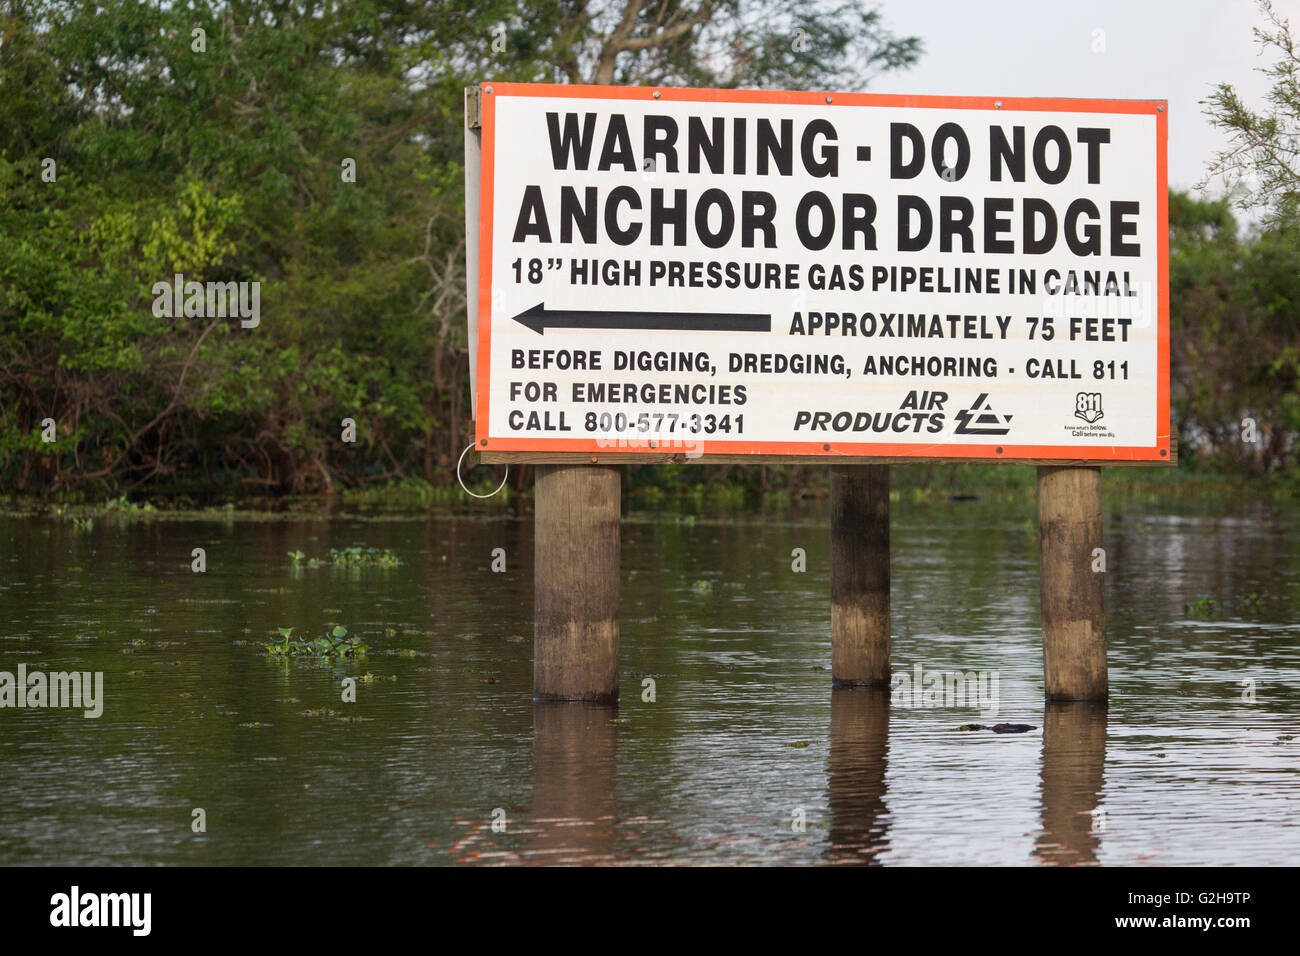 Warning sign for gas pipeline in Atchafalaya Swamp, the largest wetland in the United States - Stock Image